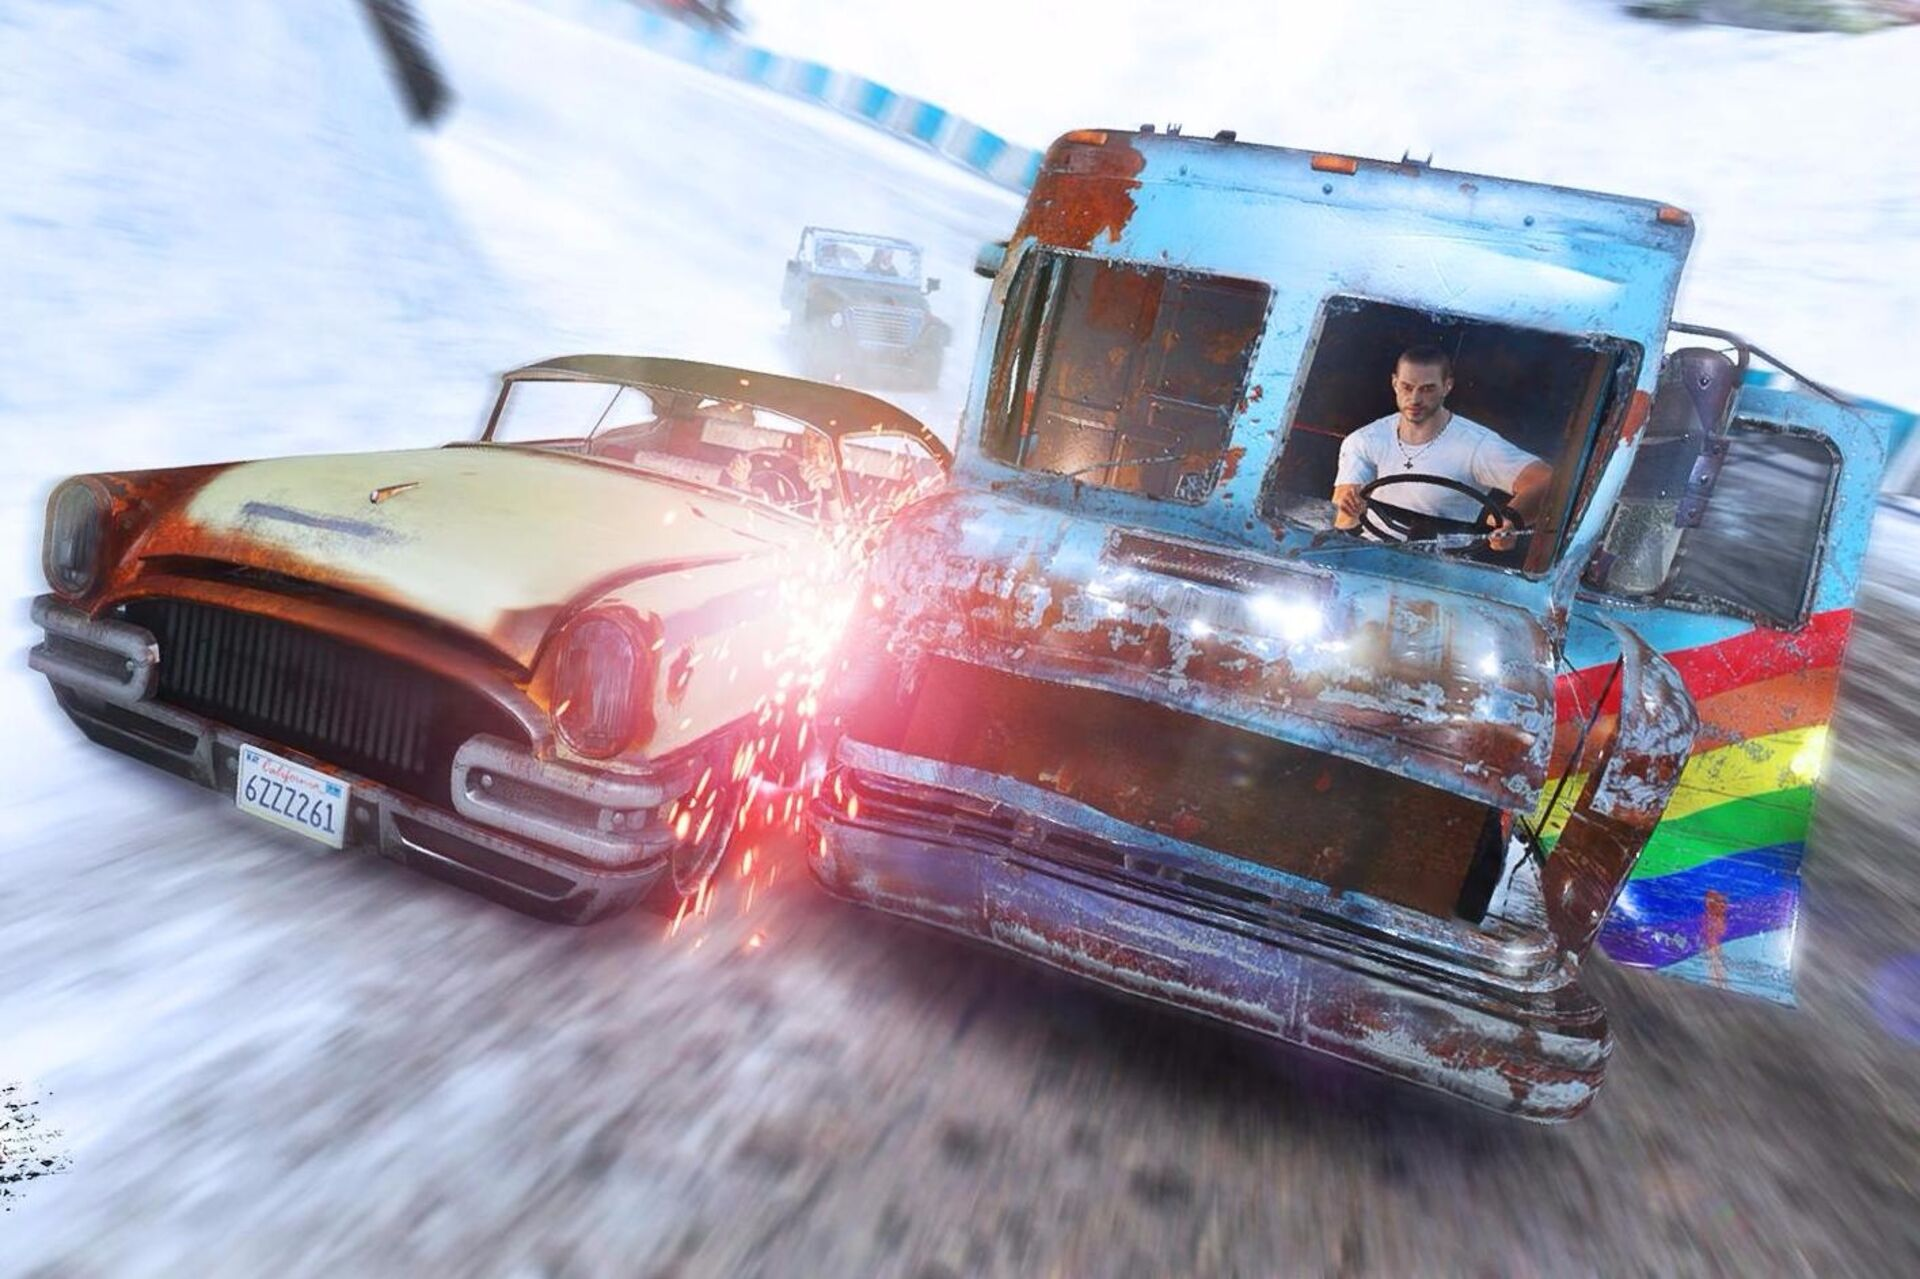 Flatout 4: Total Insanity is a welcome return to form for the series